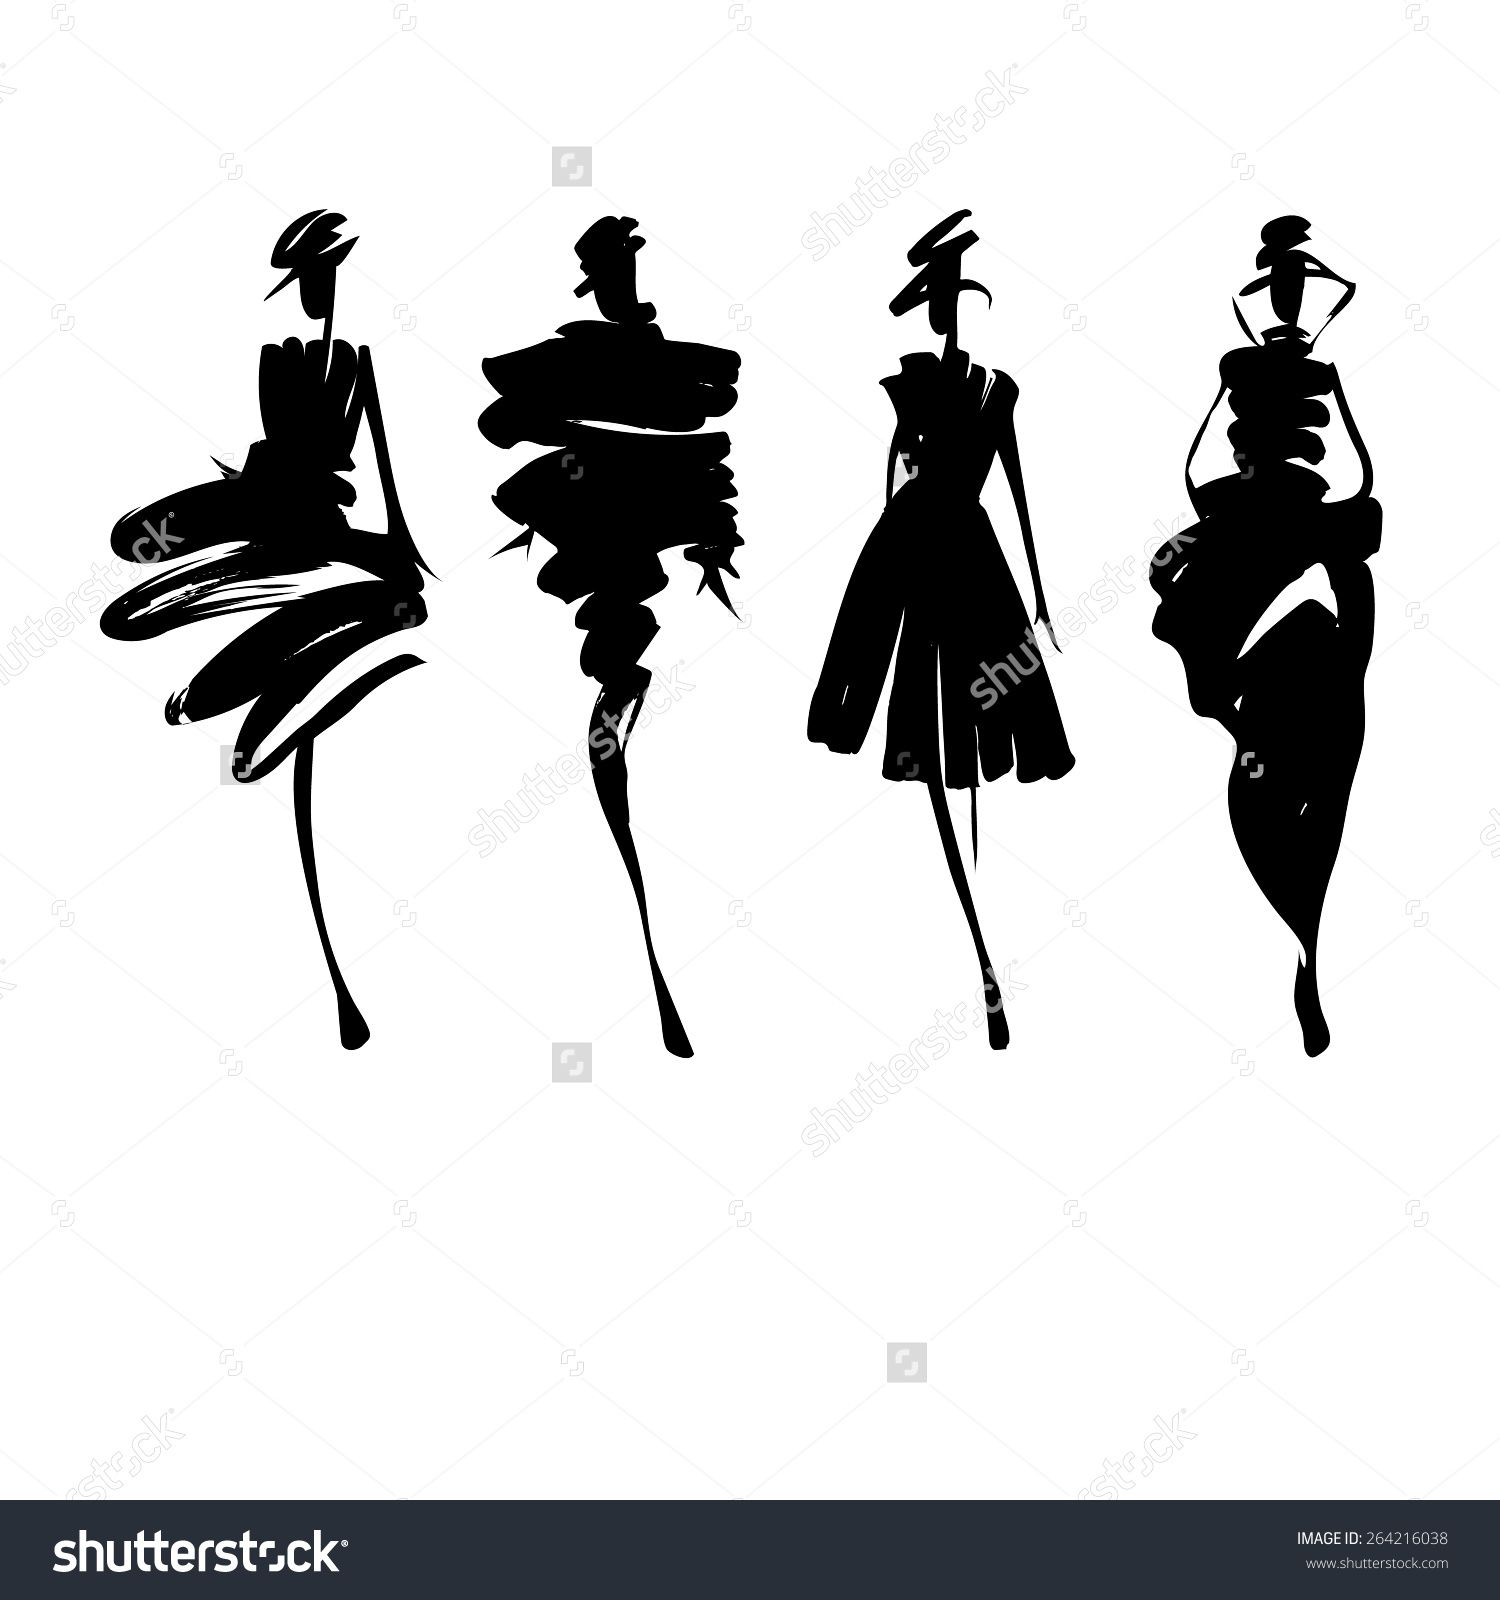 stock-vector-fashion-models-silhouettes-sketch-hand-drawn ...